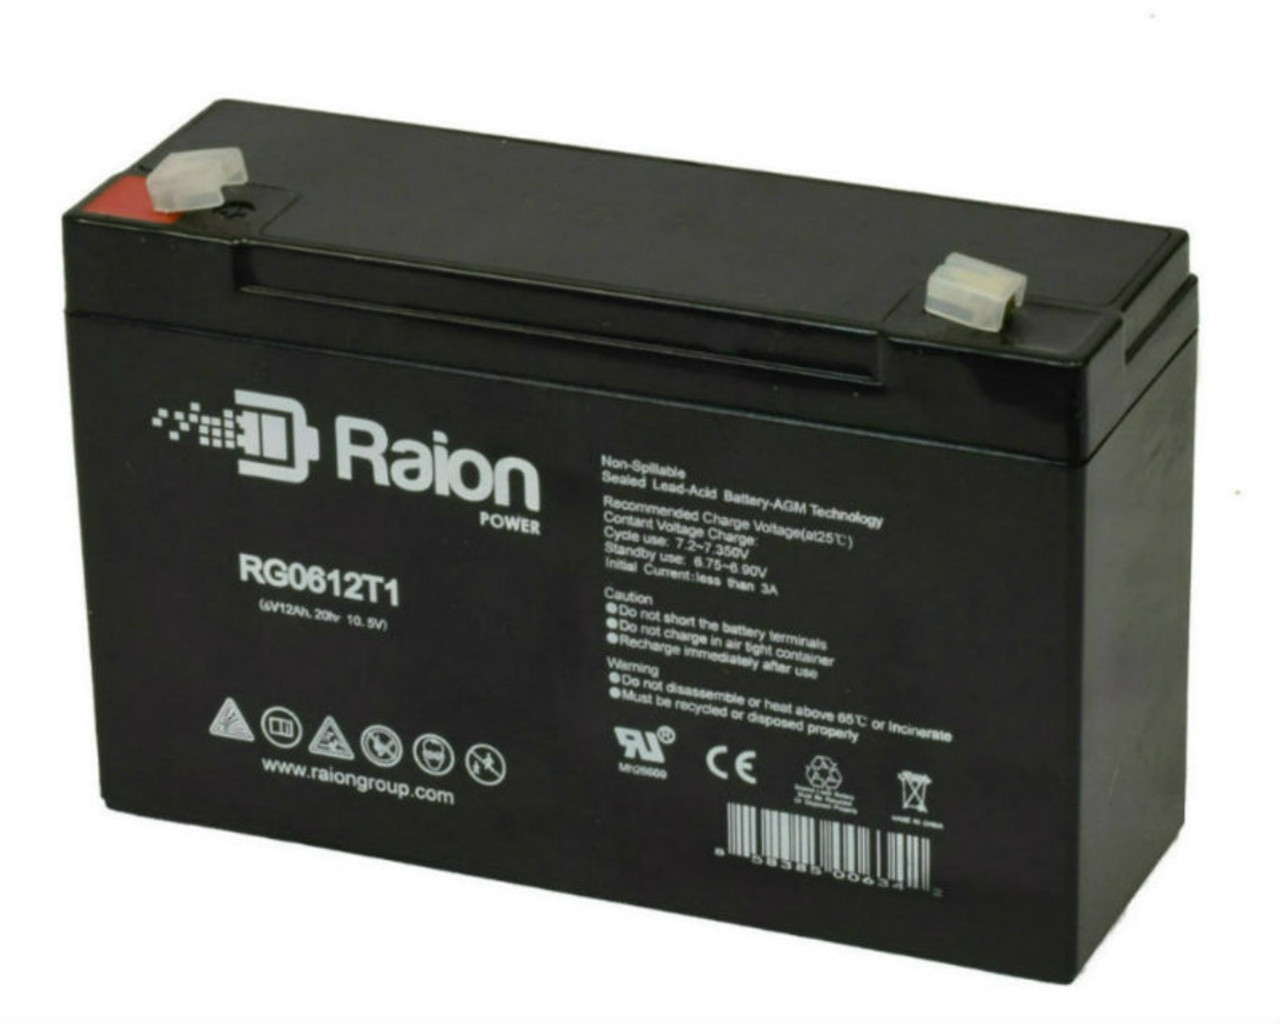 Raion Power RG06120T1 Replacement Battery Pack for Teledyne Big Beam H2SC6S16 emergency light